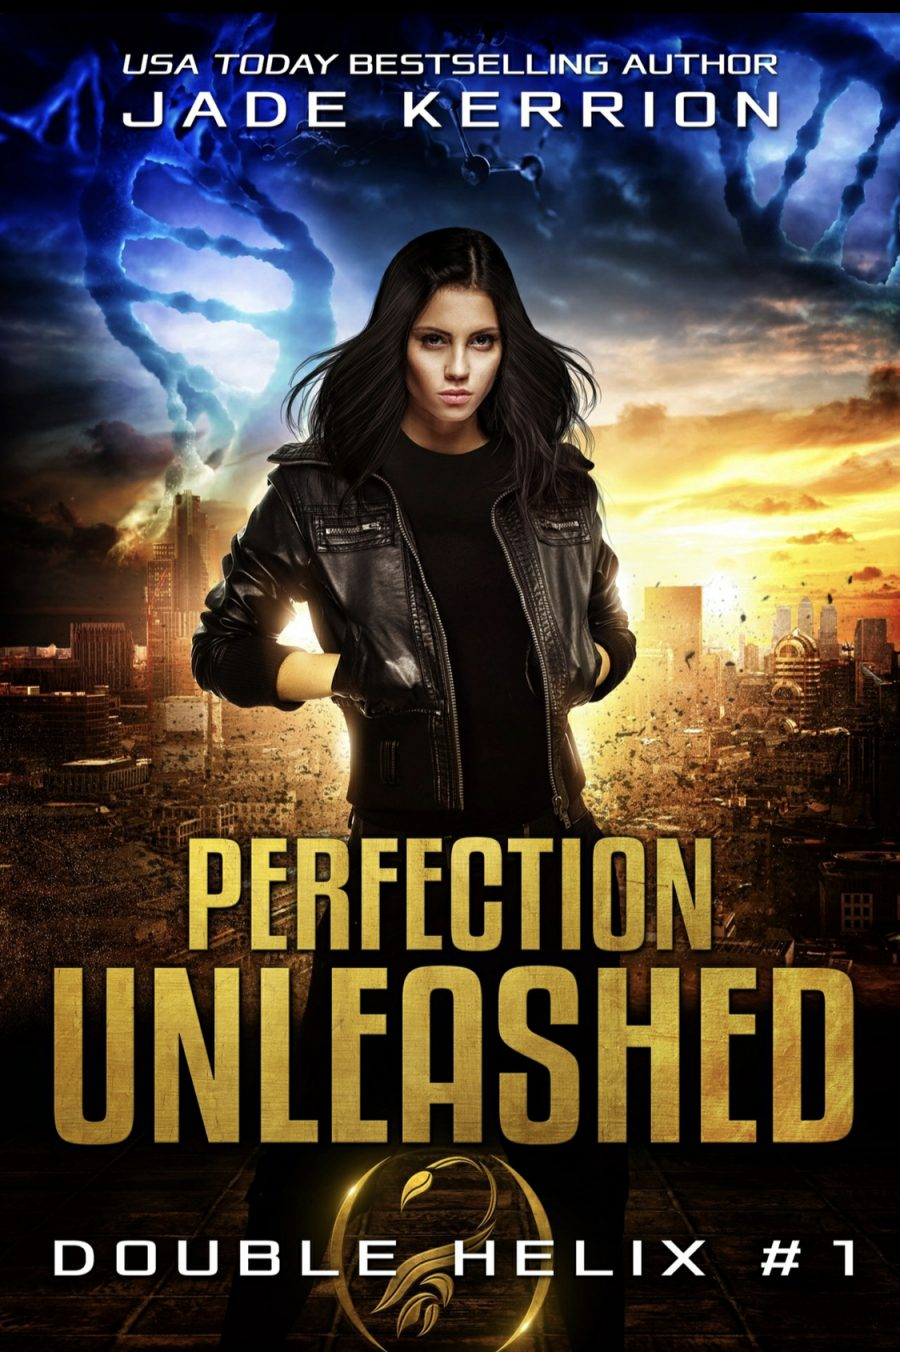 Perfection Unleashed by Jade Kerrion - A Book Review #BookReview #Review #SciFi #4Star #FirstInSeries #Cliffhanger #XMen #Mutants #KindleUnlimited #KU